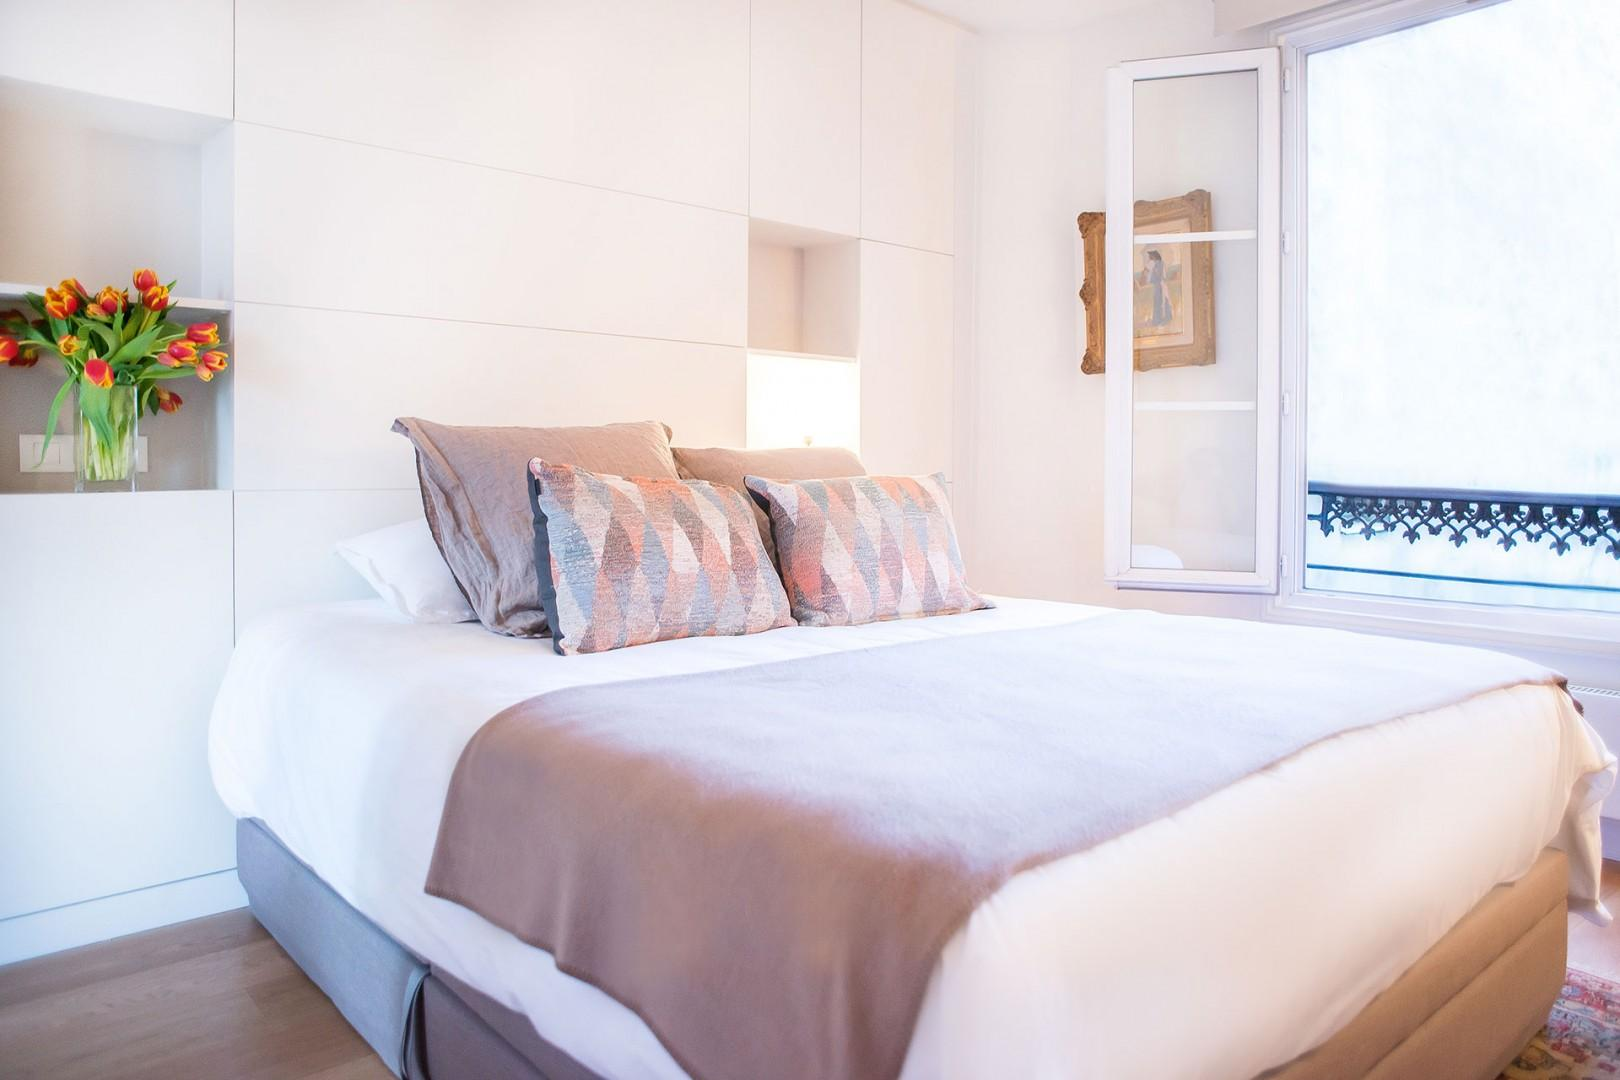 Relax in the elegant private bedroom with an en suite bathroom.